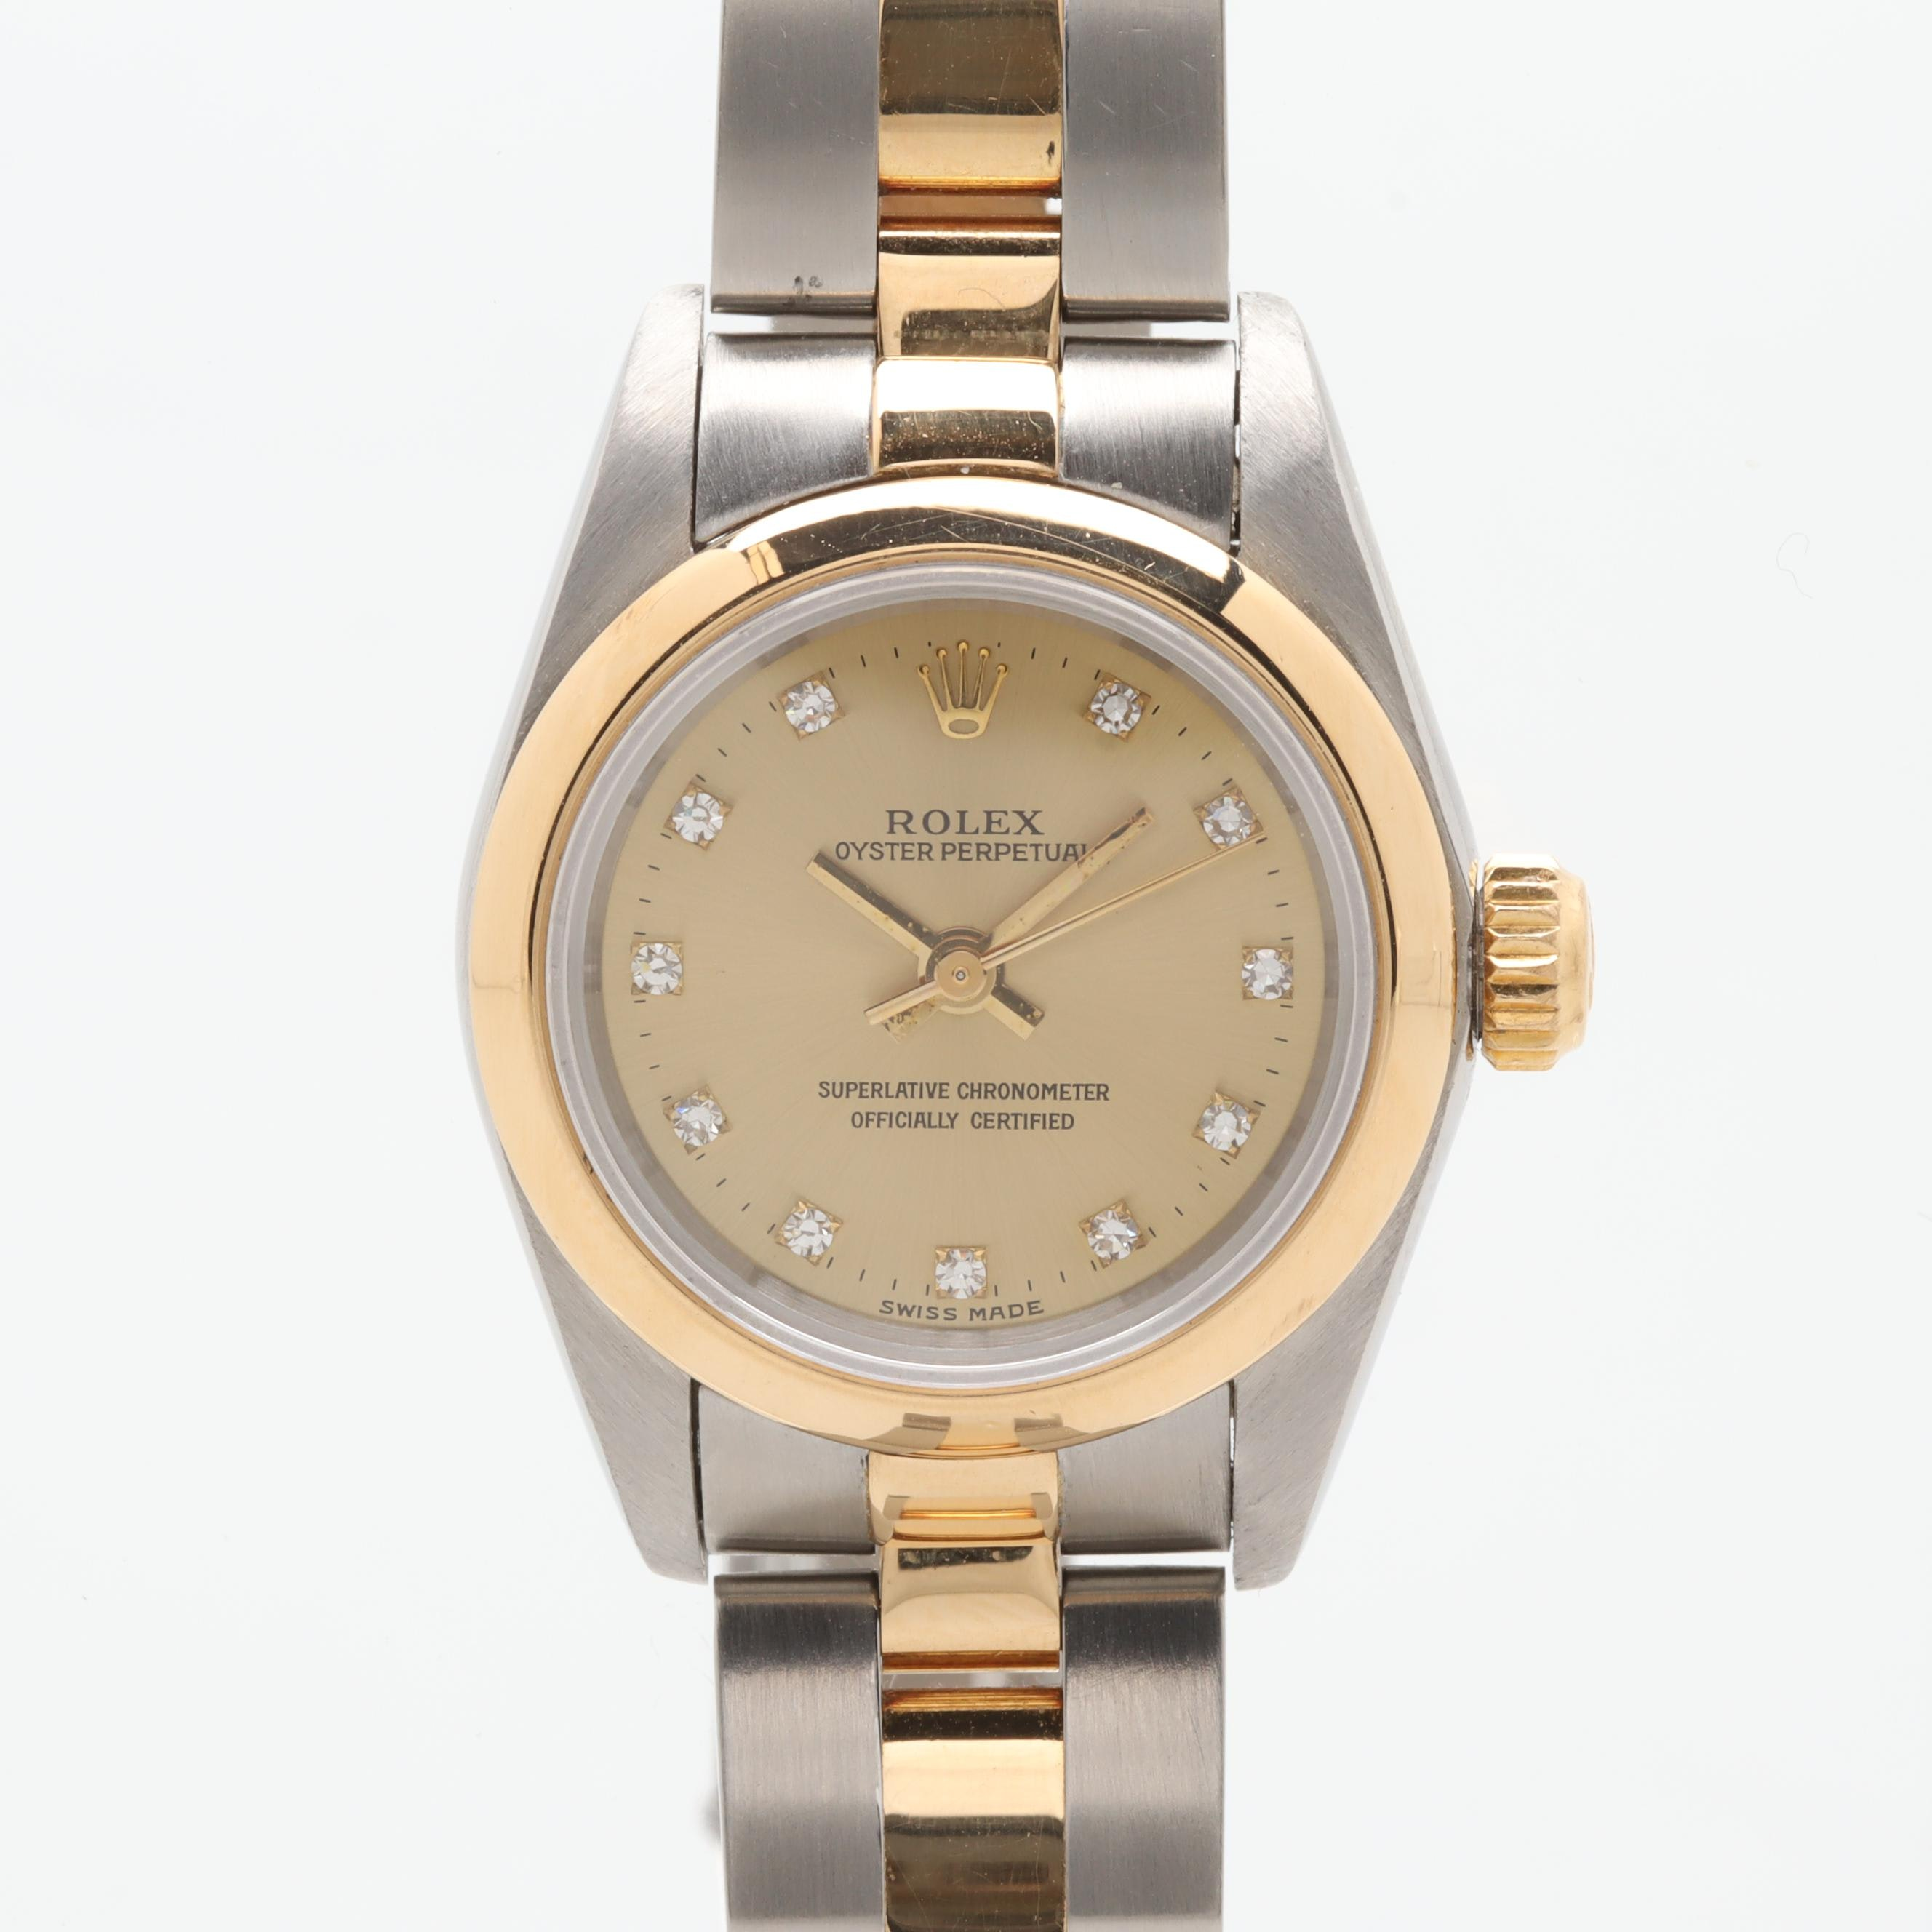 Rolex Perpetual 18K Yellow Gold and Stainless Steel Diamond Wristwatch